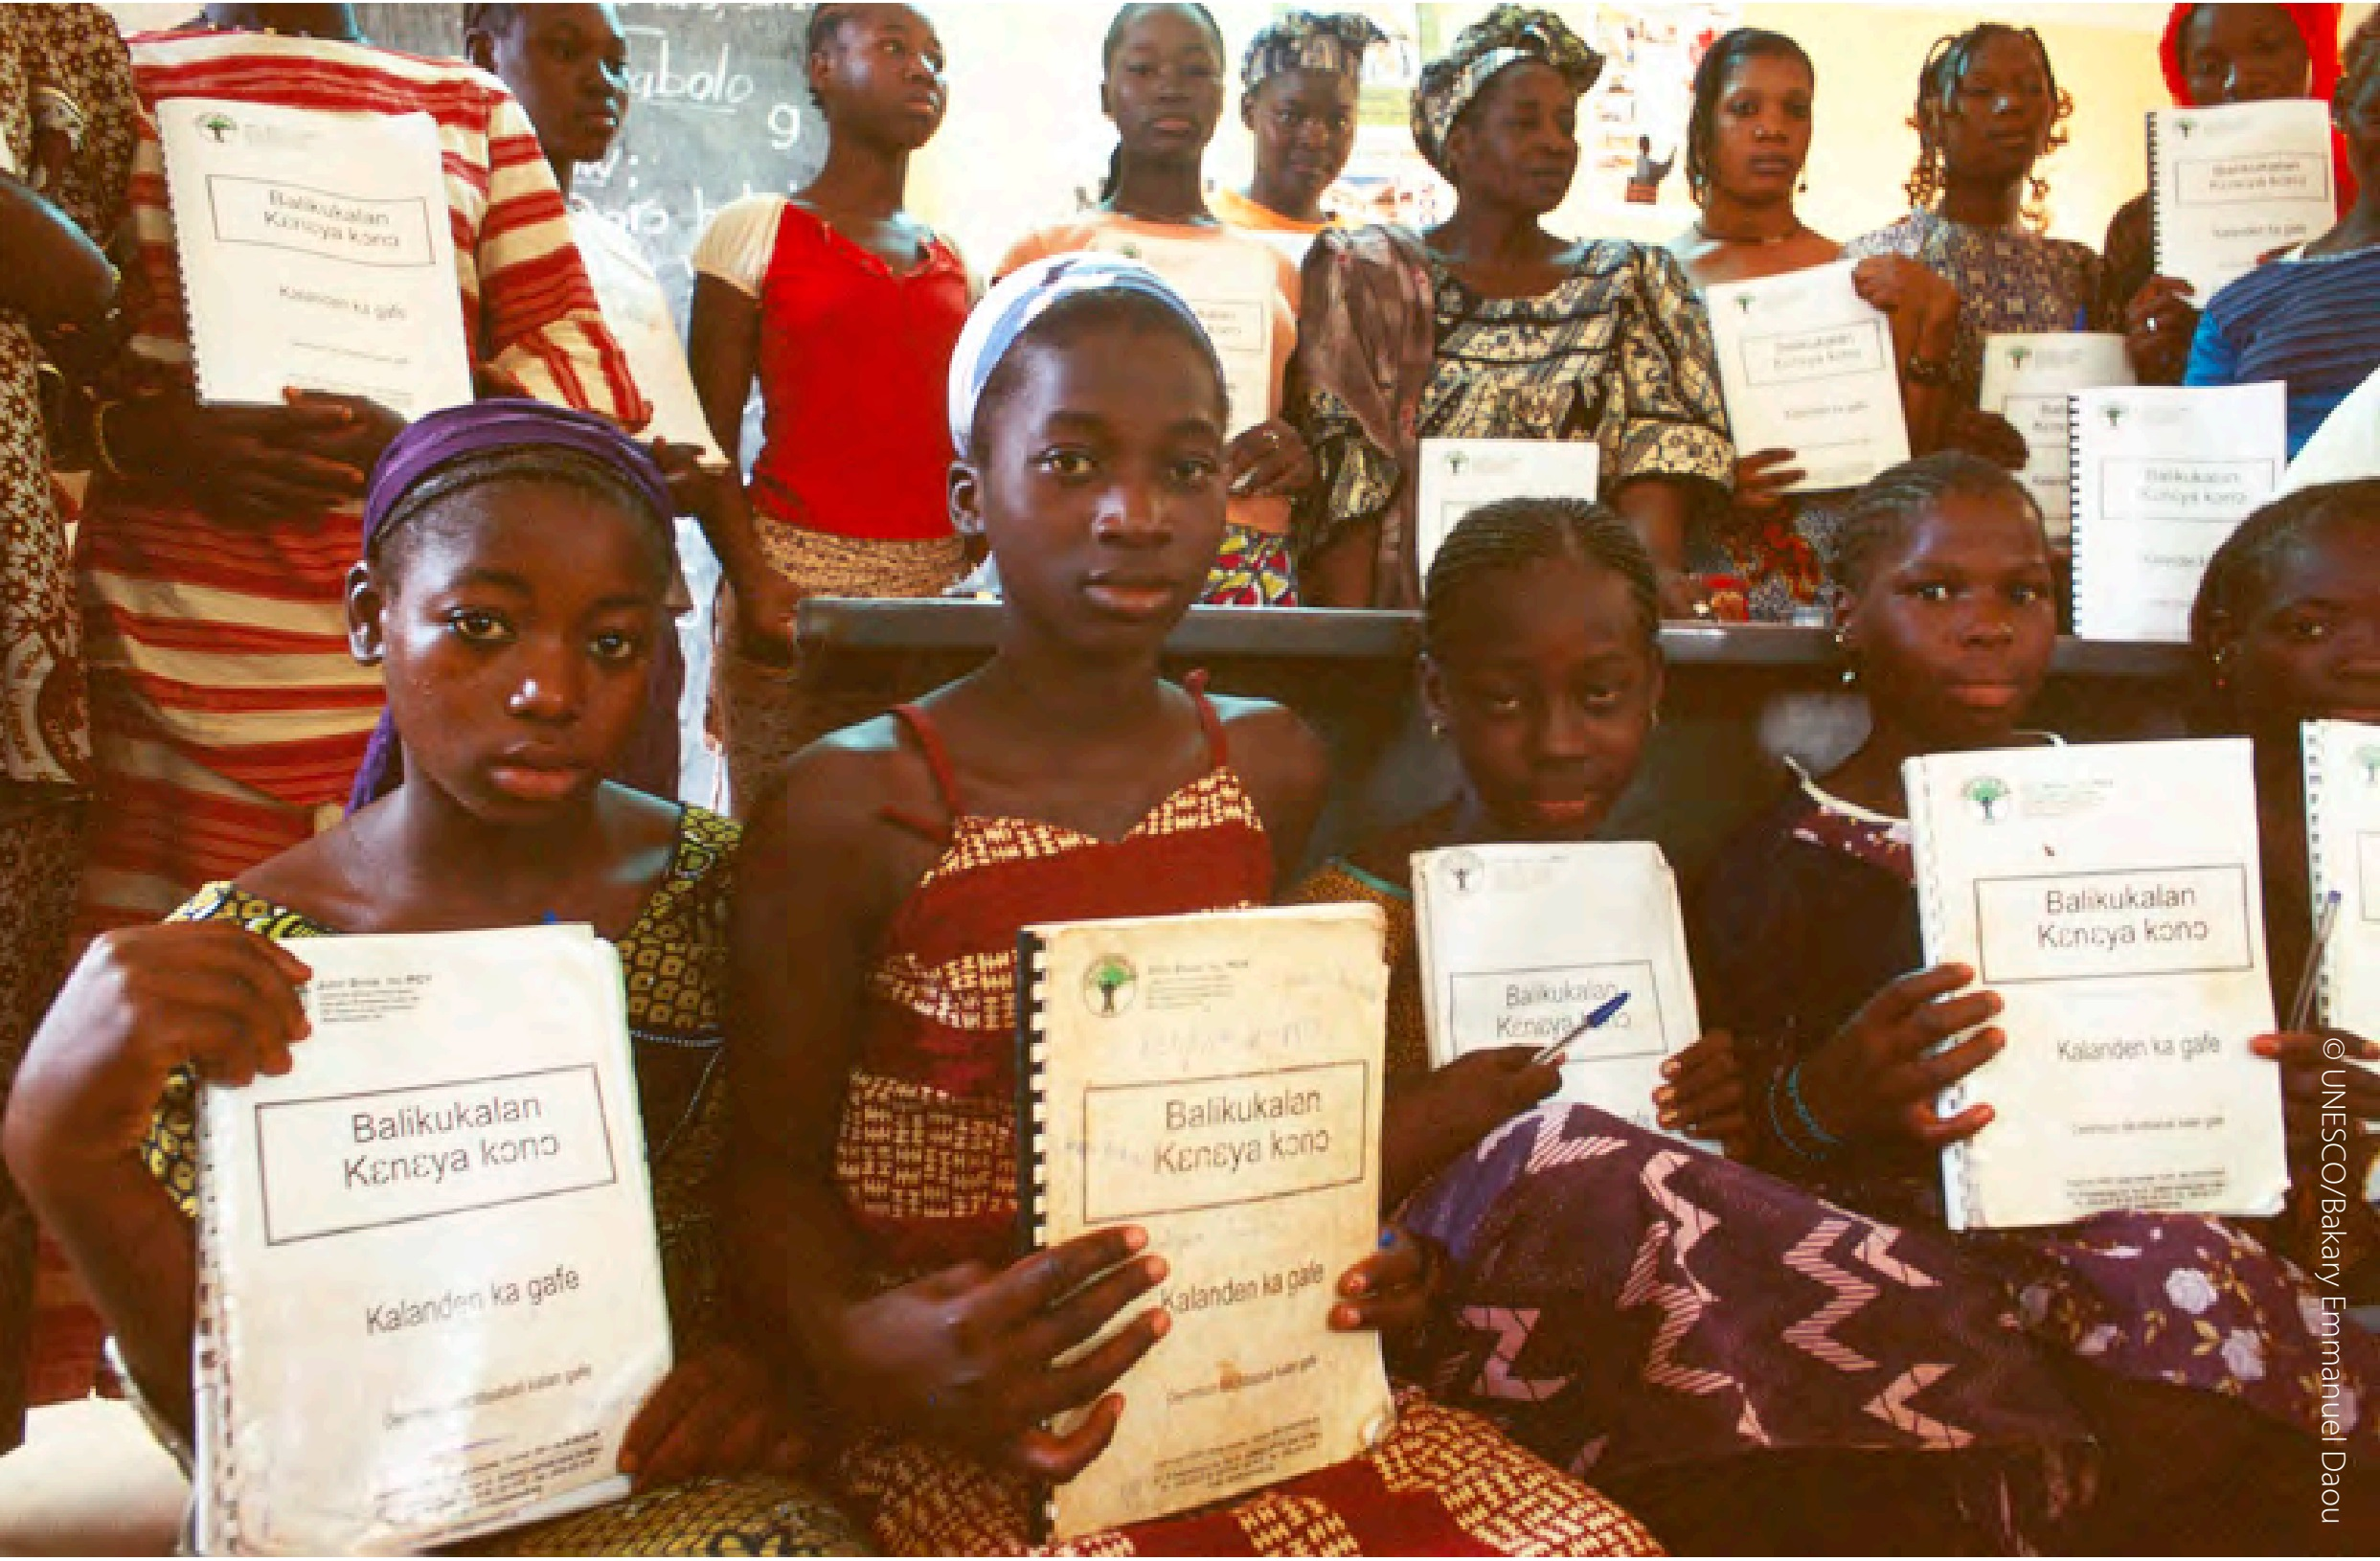 New teachers at a training center in Mali. Photo courtesy of UNESCO.